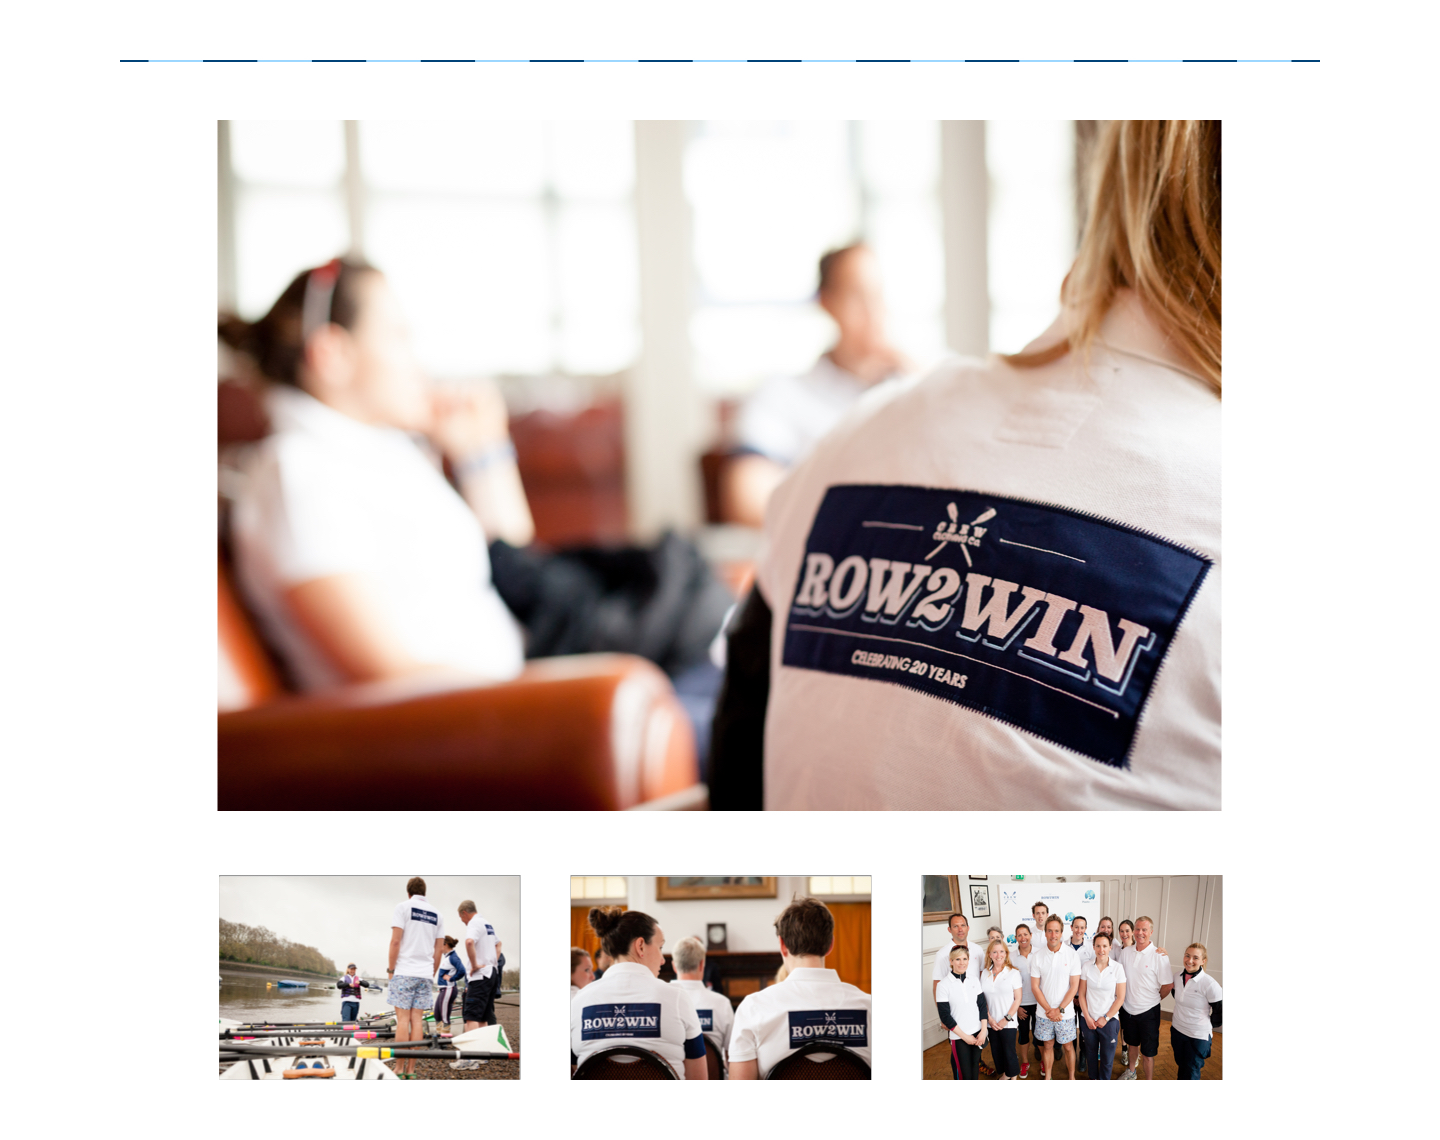 Row2Win event branding and logo design displayed on a polo shirt